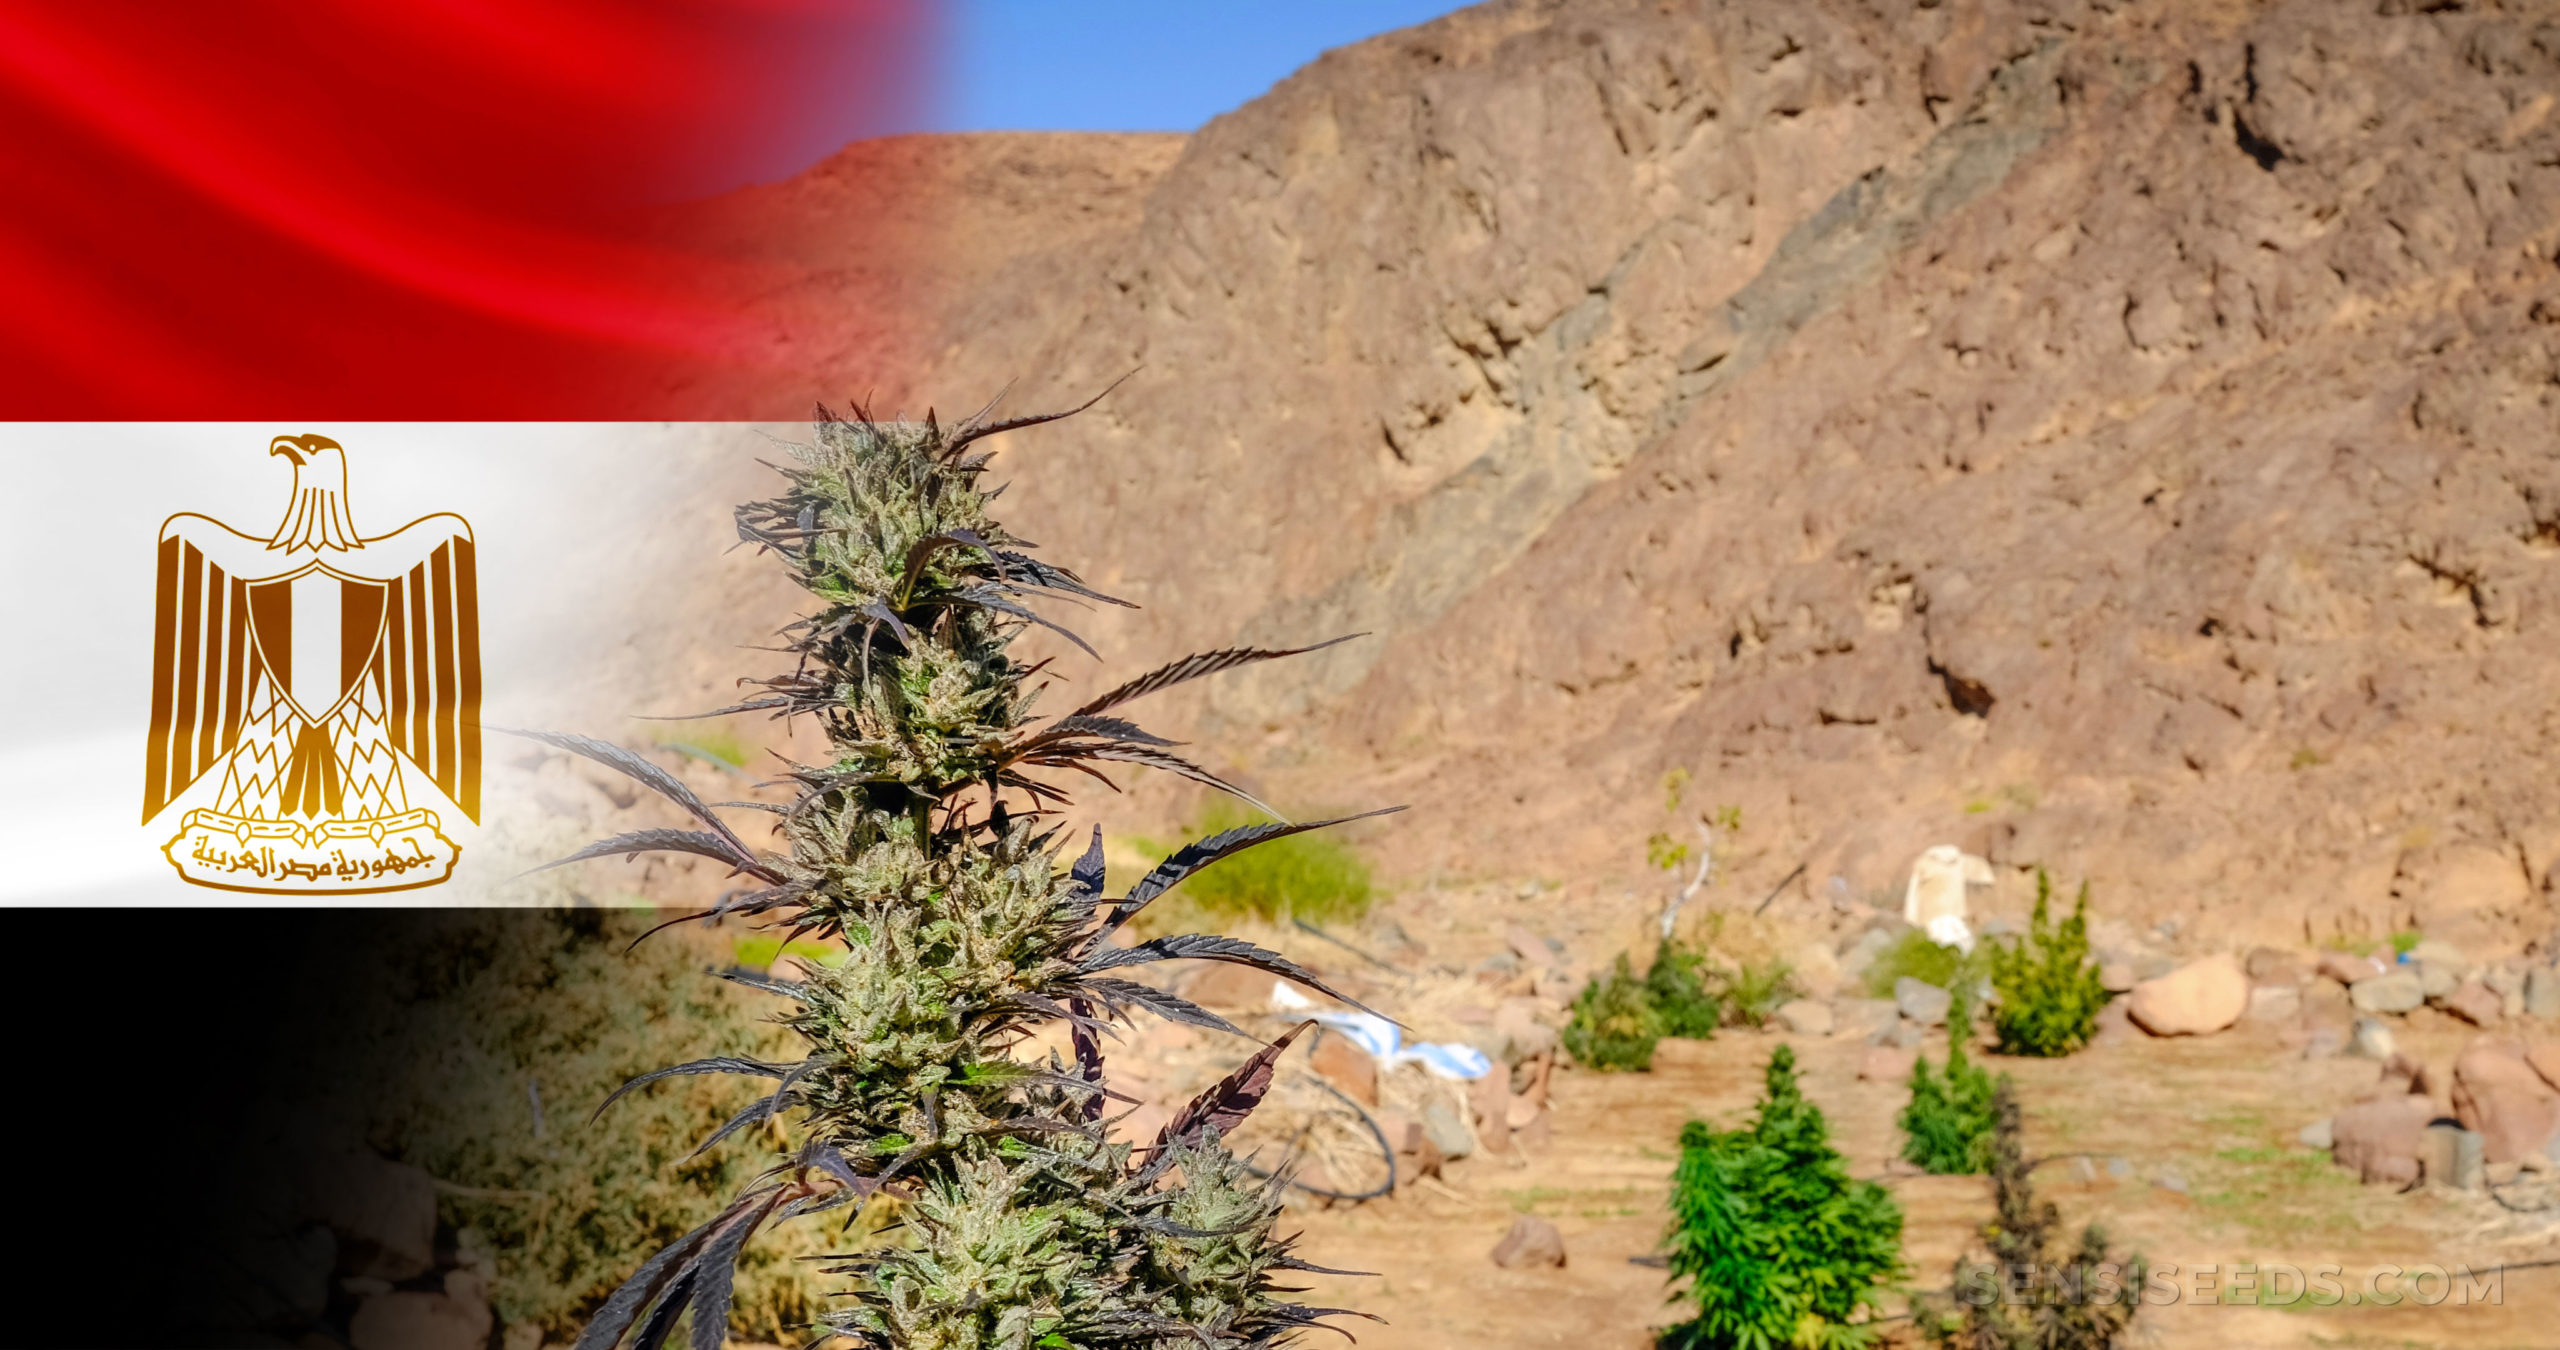 The Egyptian flag and a cannabis plant growing in the desert